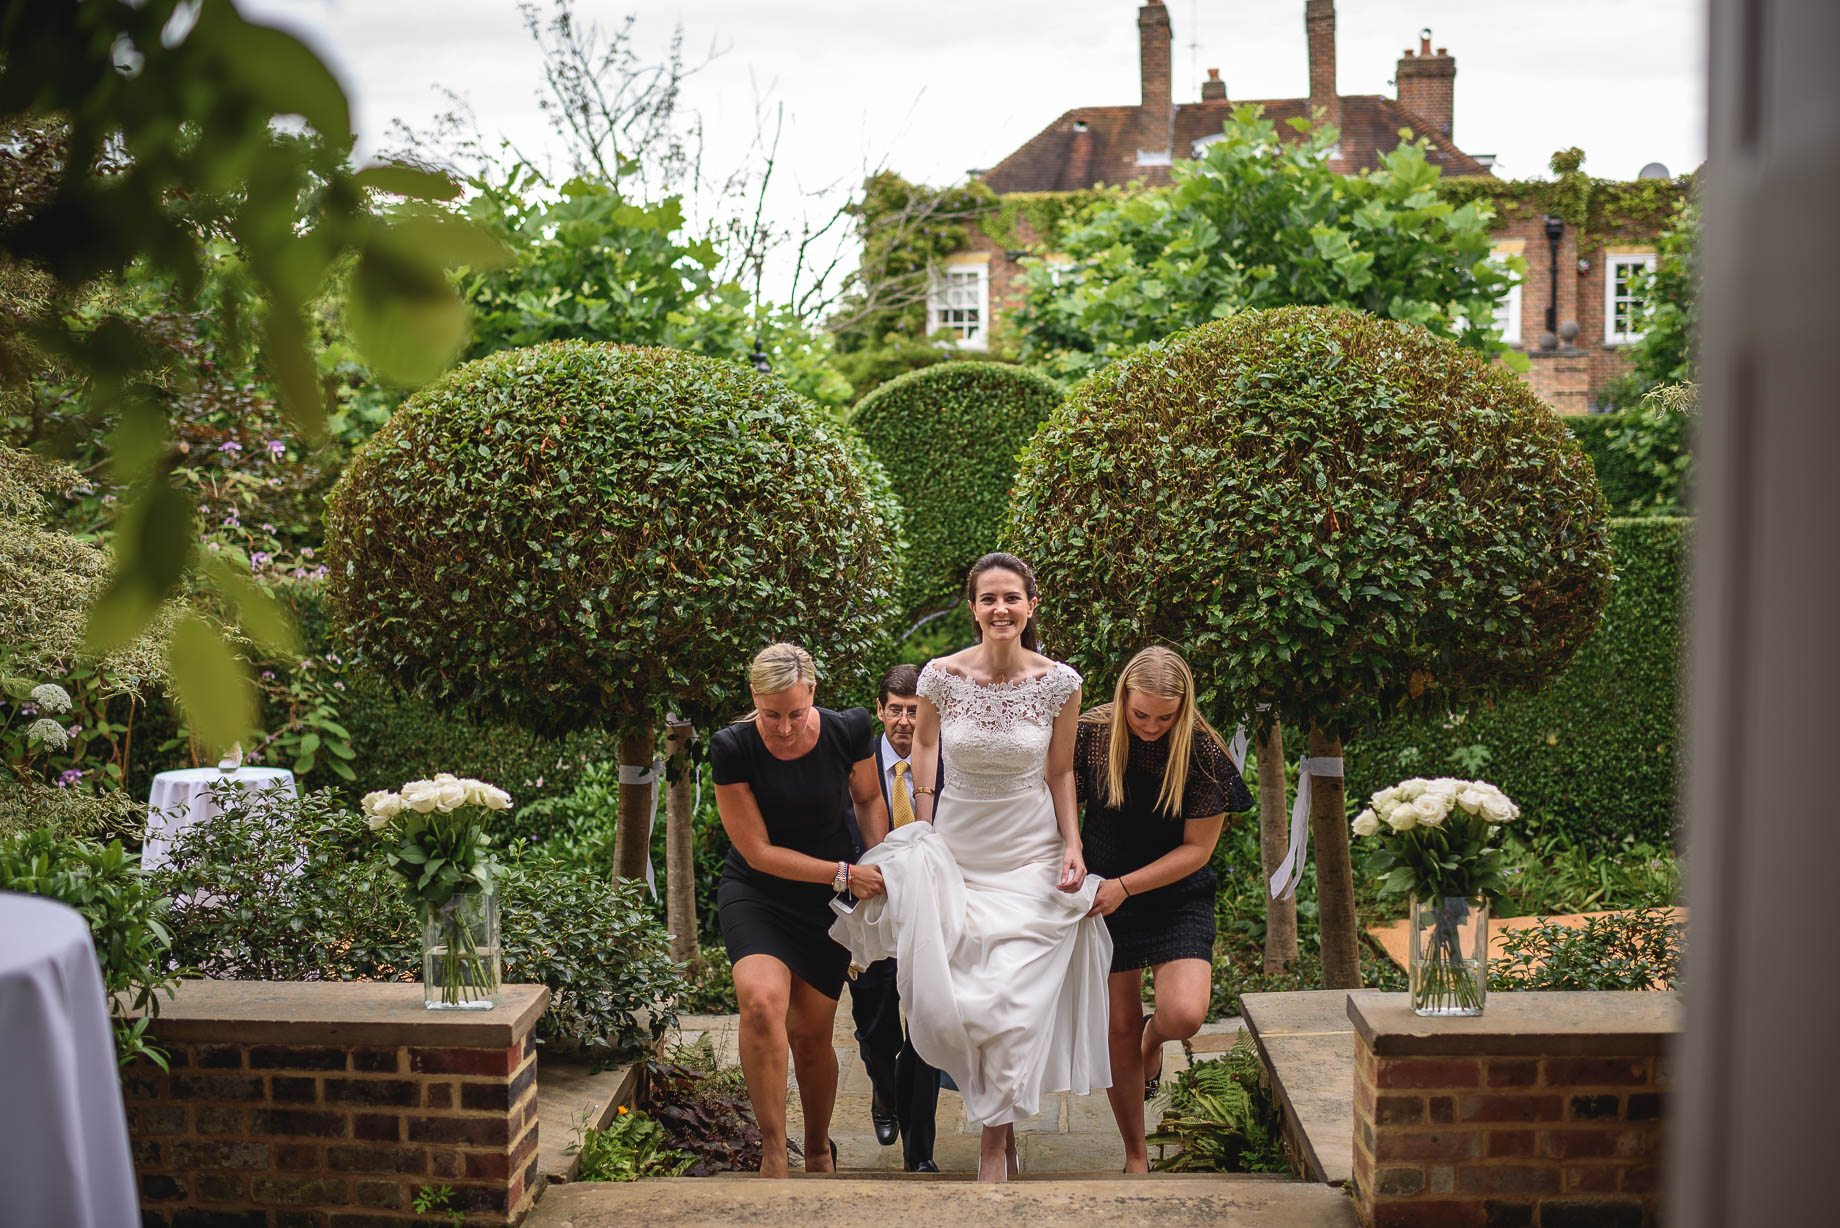 London wedding photography - Claire and JW - Guy Collier Photography (64 of 153)